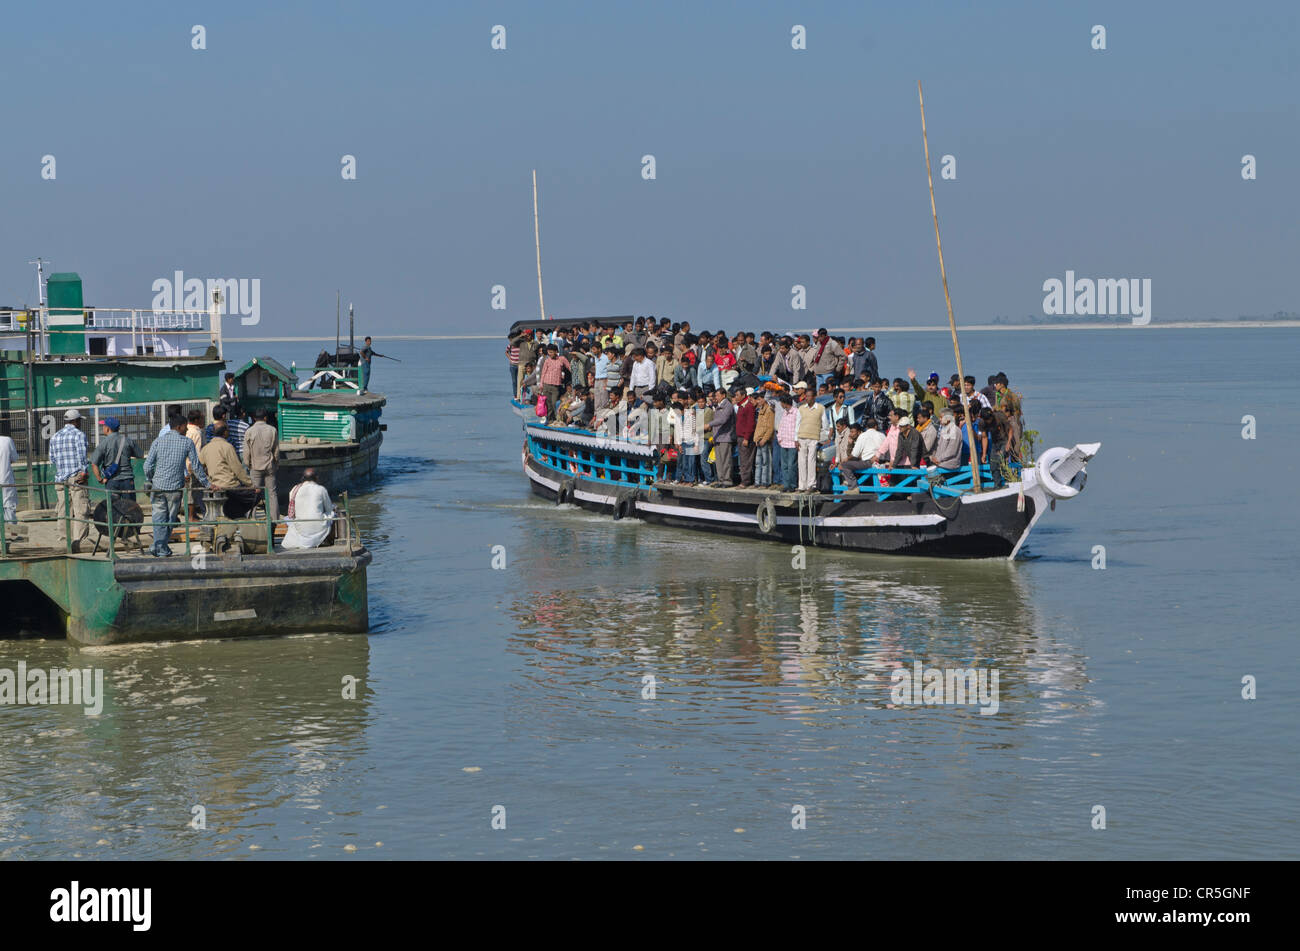 Rustic ferry-boats at Jorhat take more than one hour to cross the mighty Brahmaputra River, India, Asia - Stock Image